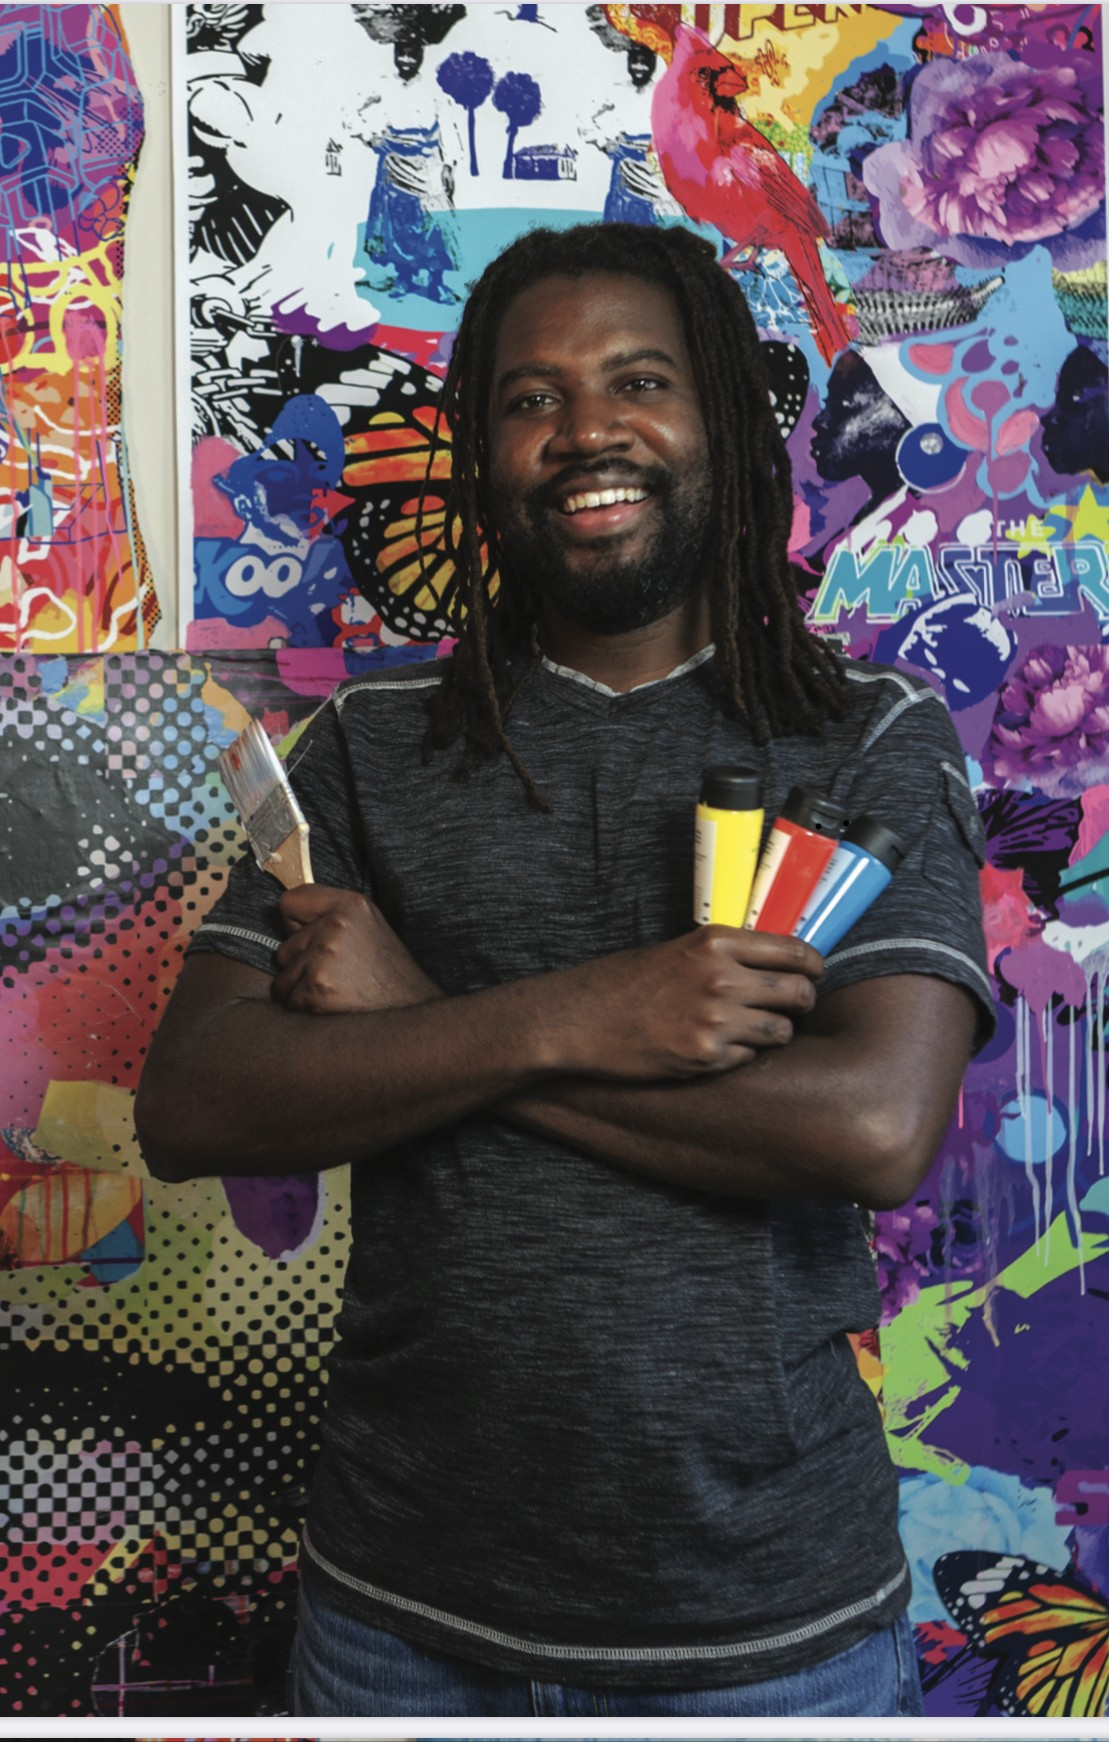 Amiri Geuka Farris will be the featured artist at Grand Bohemian Gallery at The Mansion on Forsyth Park from June 10 through July 9.